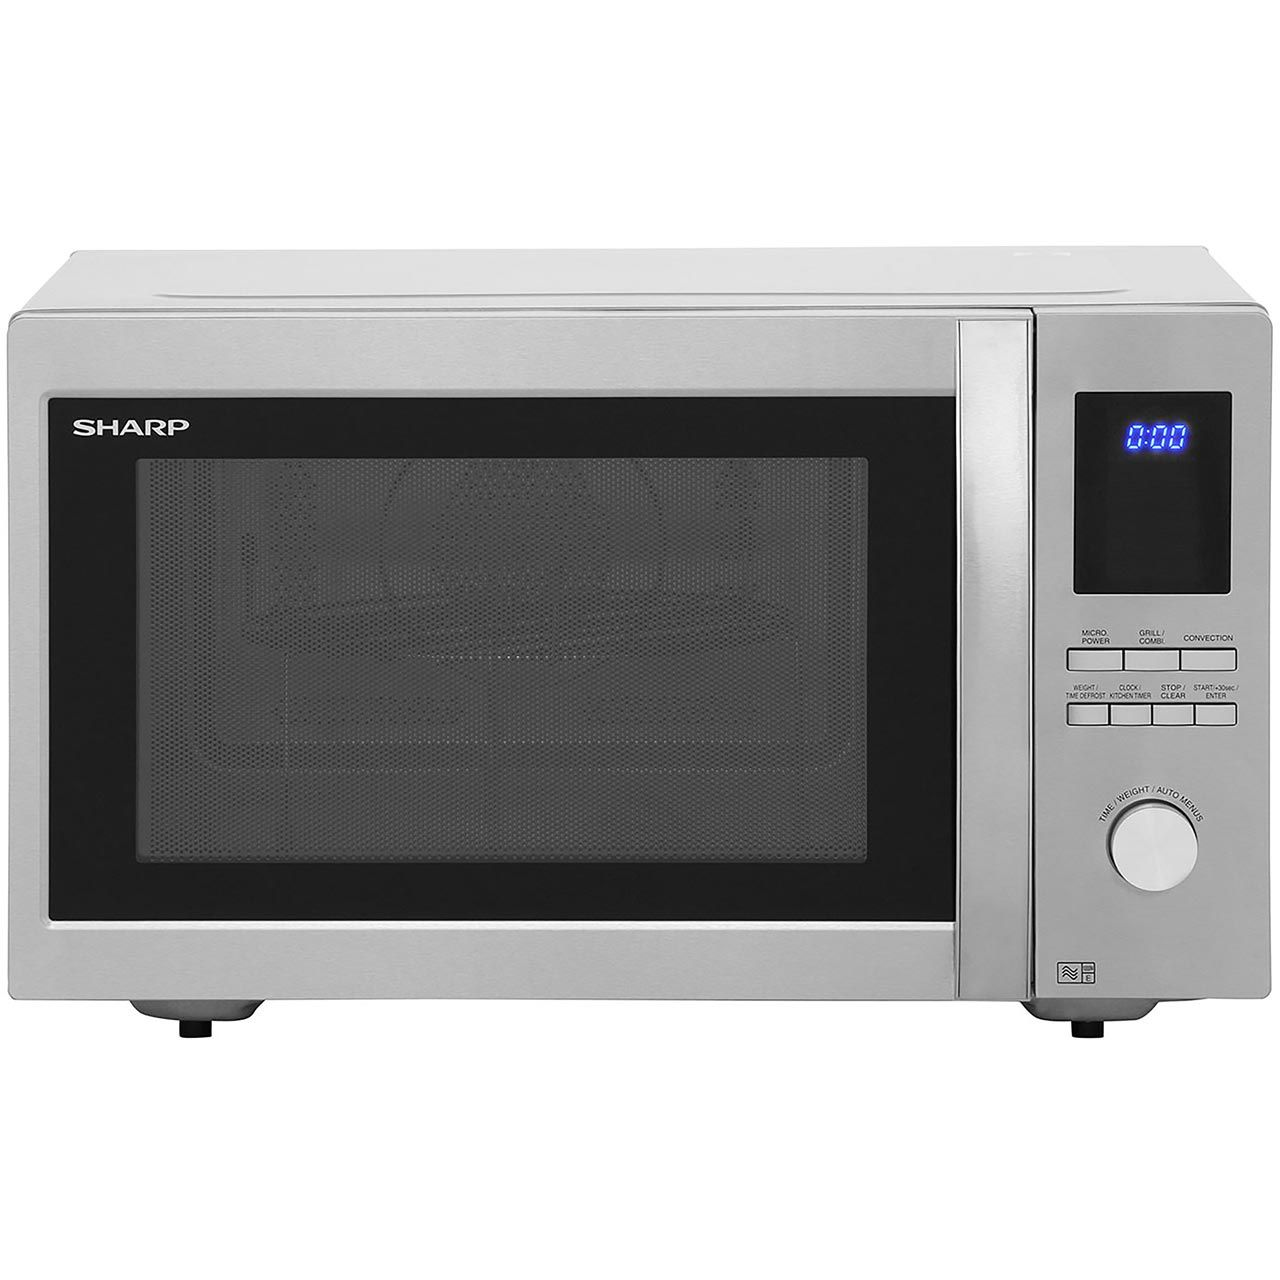 R982stm Si Sharp Microwave Oven Convection Oven Ao Com